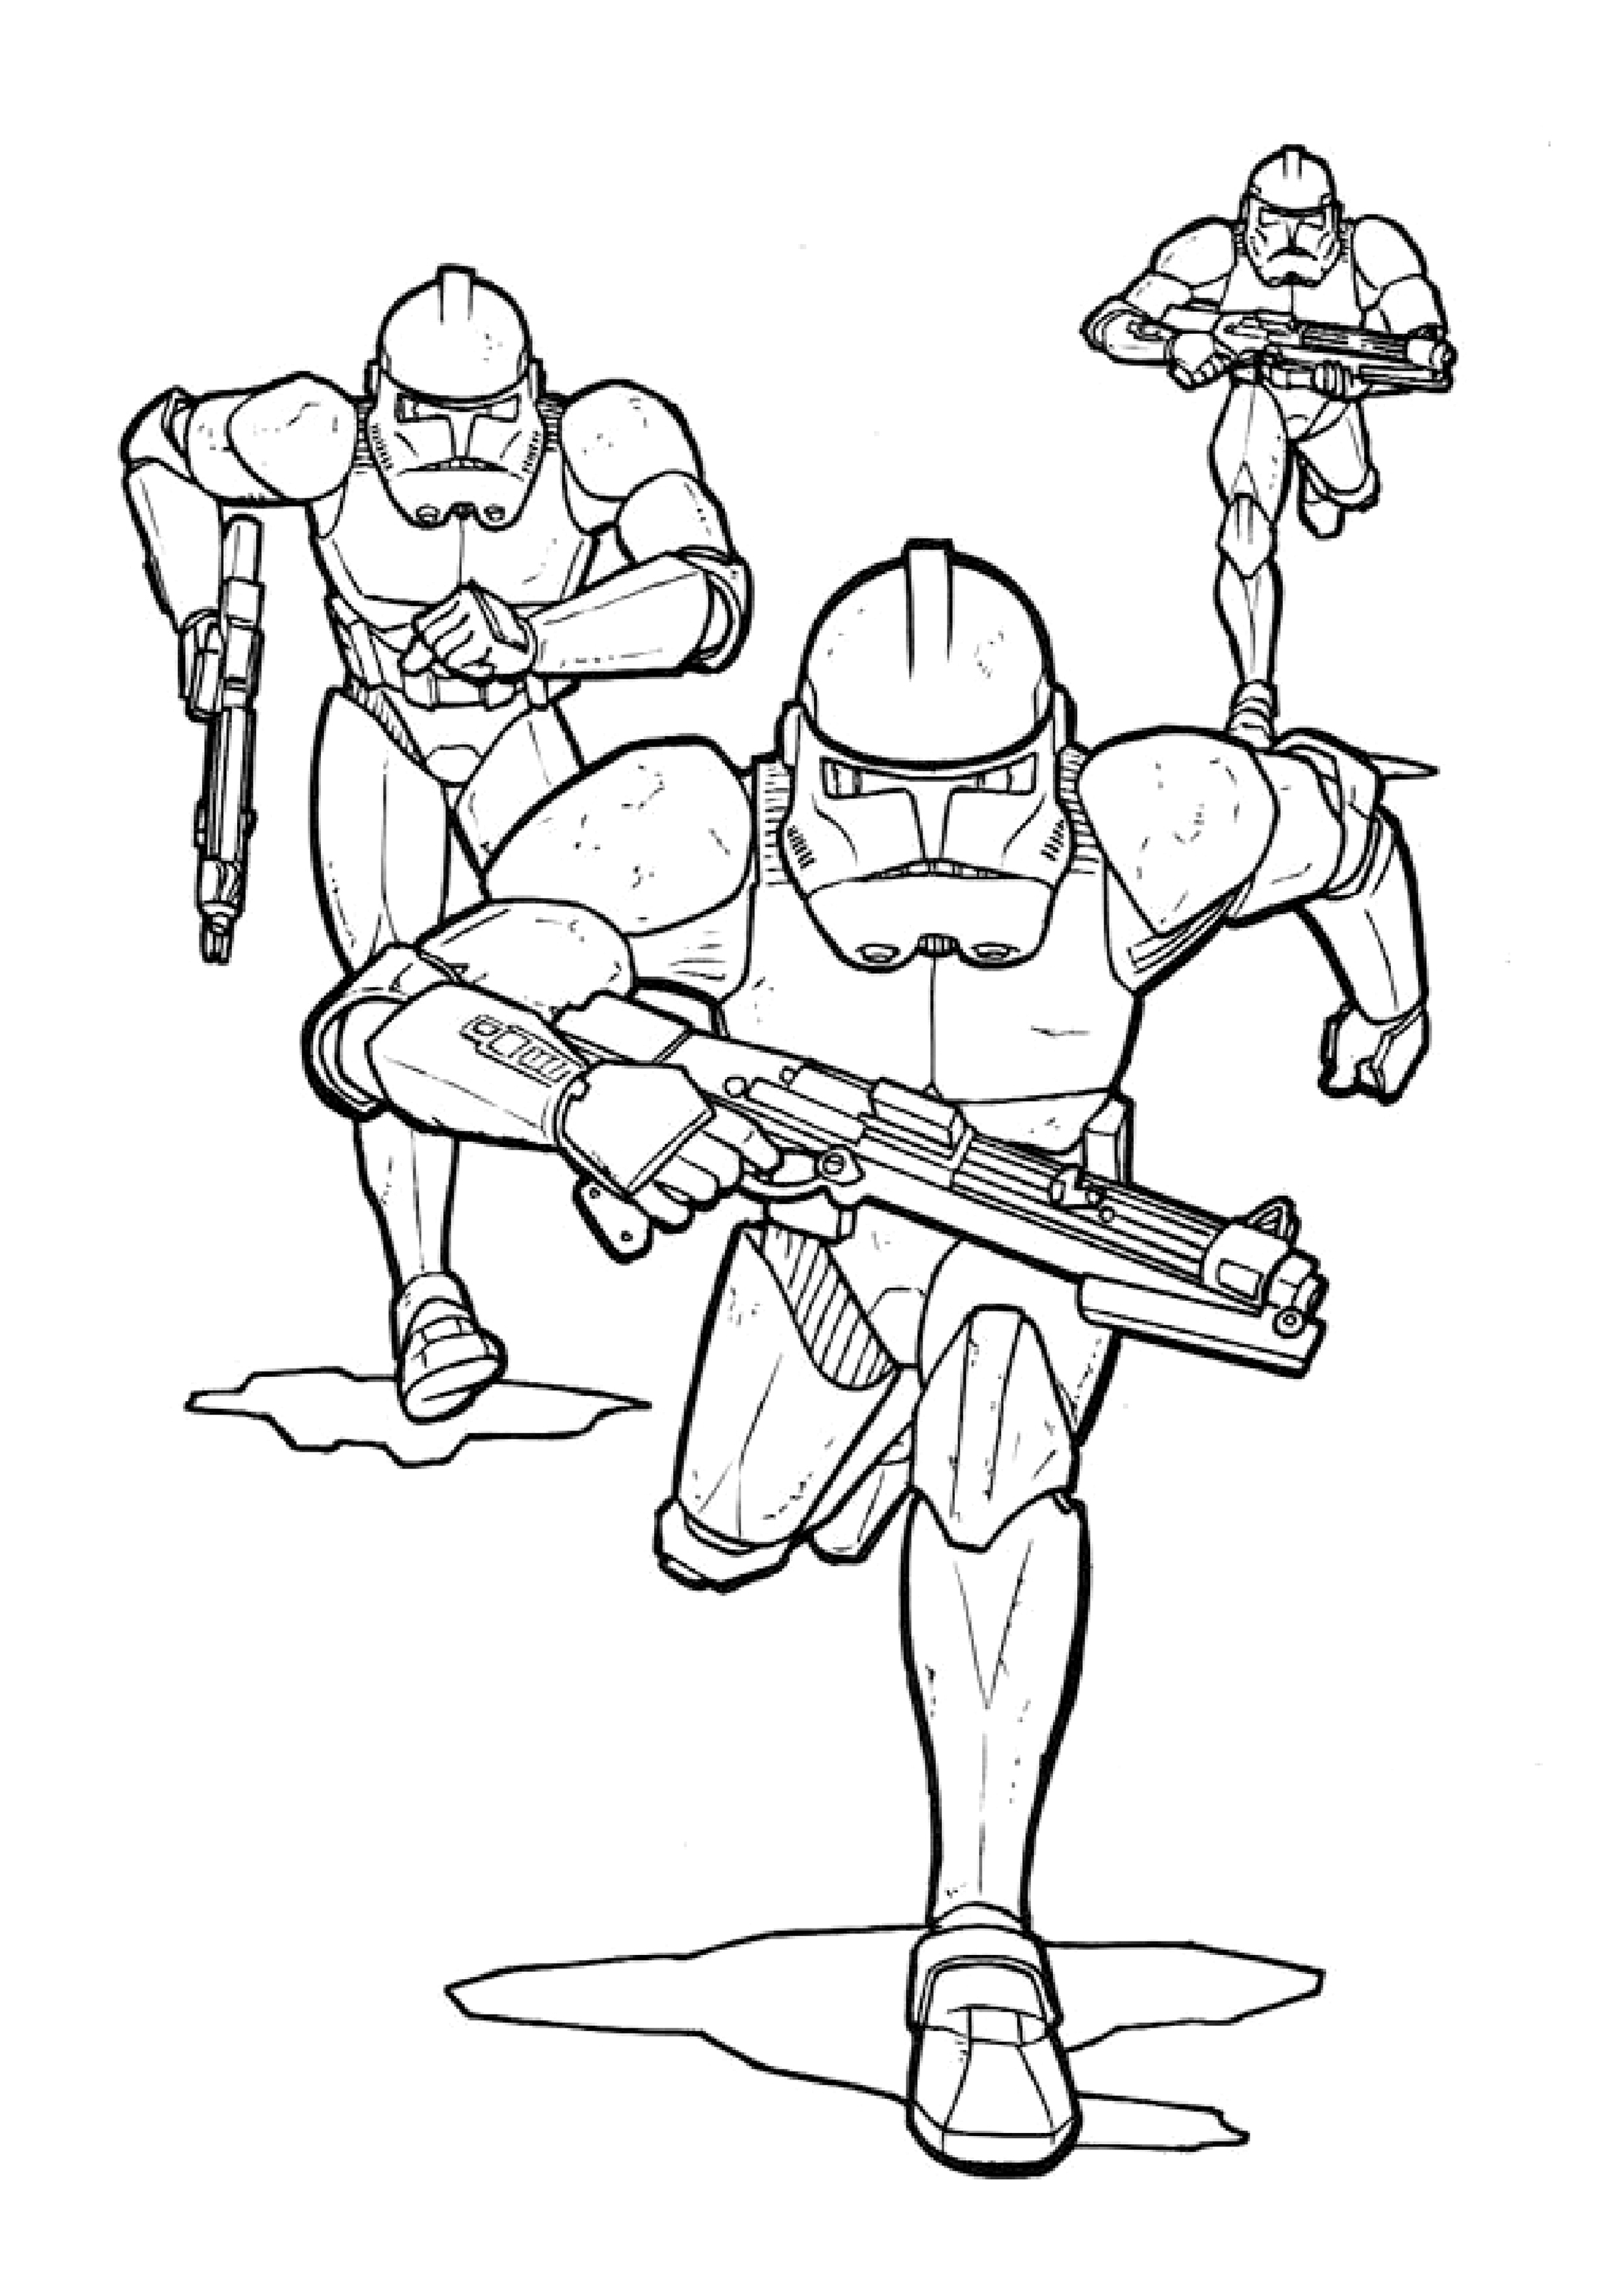 star wars coloring images coloring pages star wars free printable coloring pages images star coloring wars